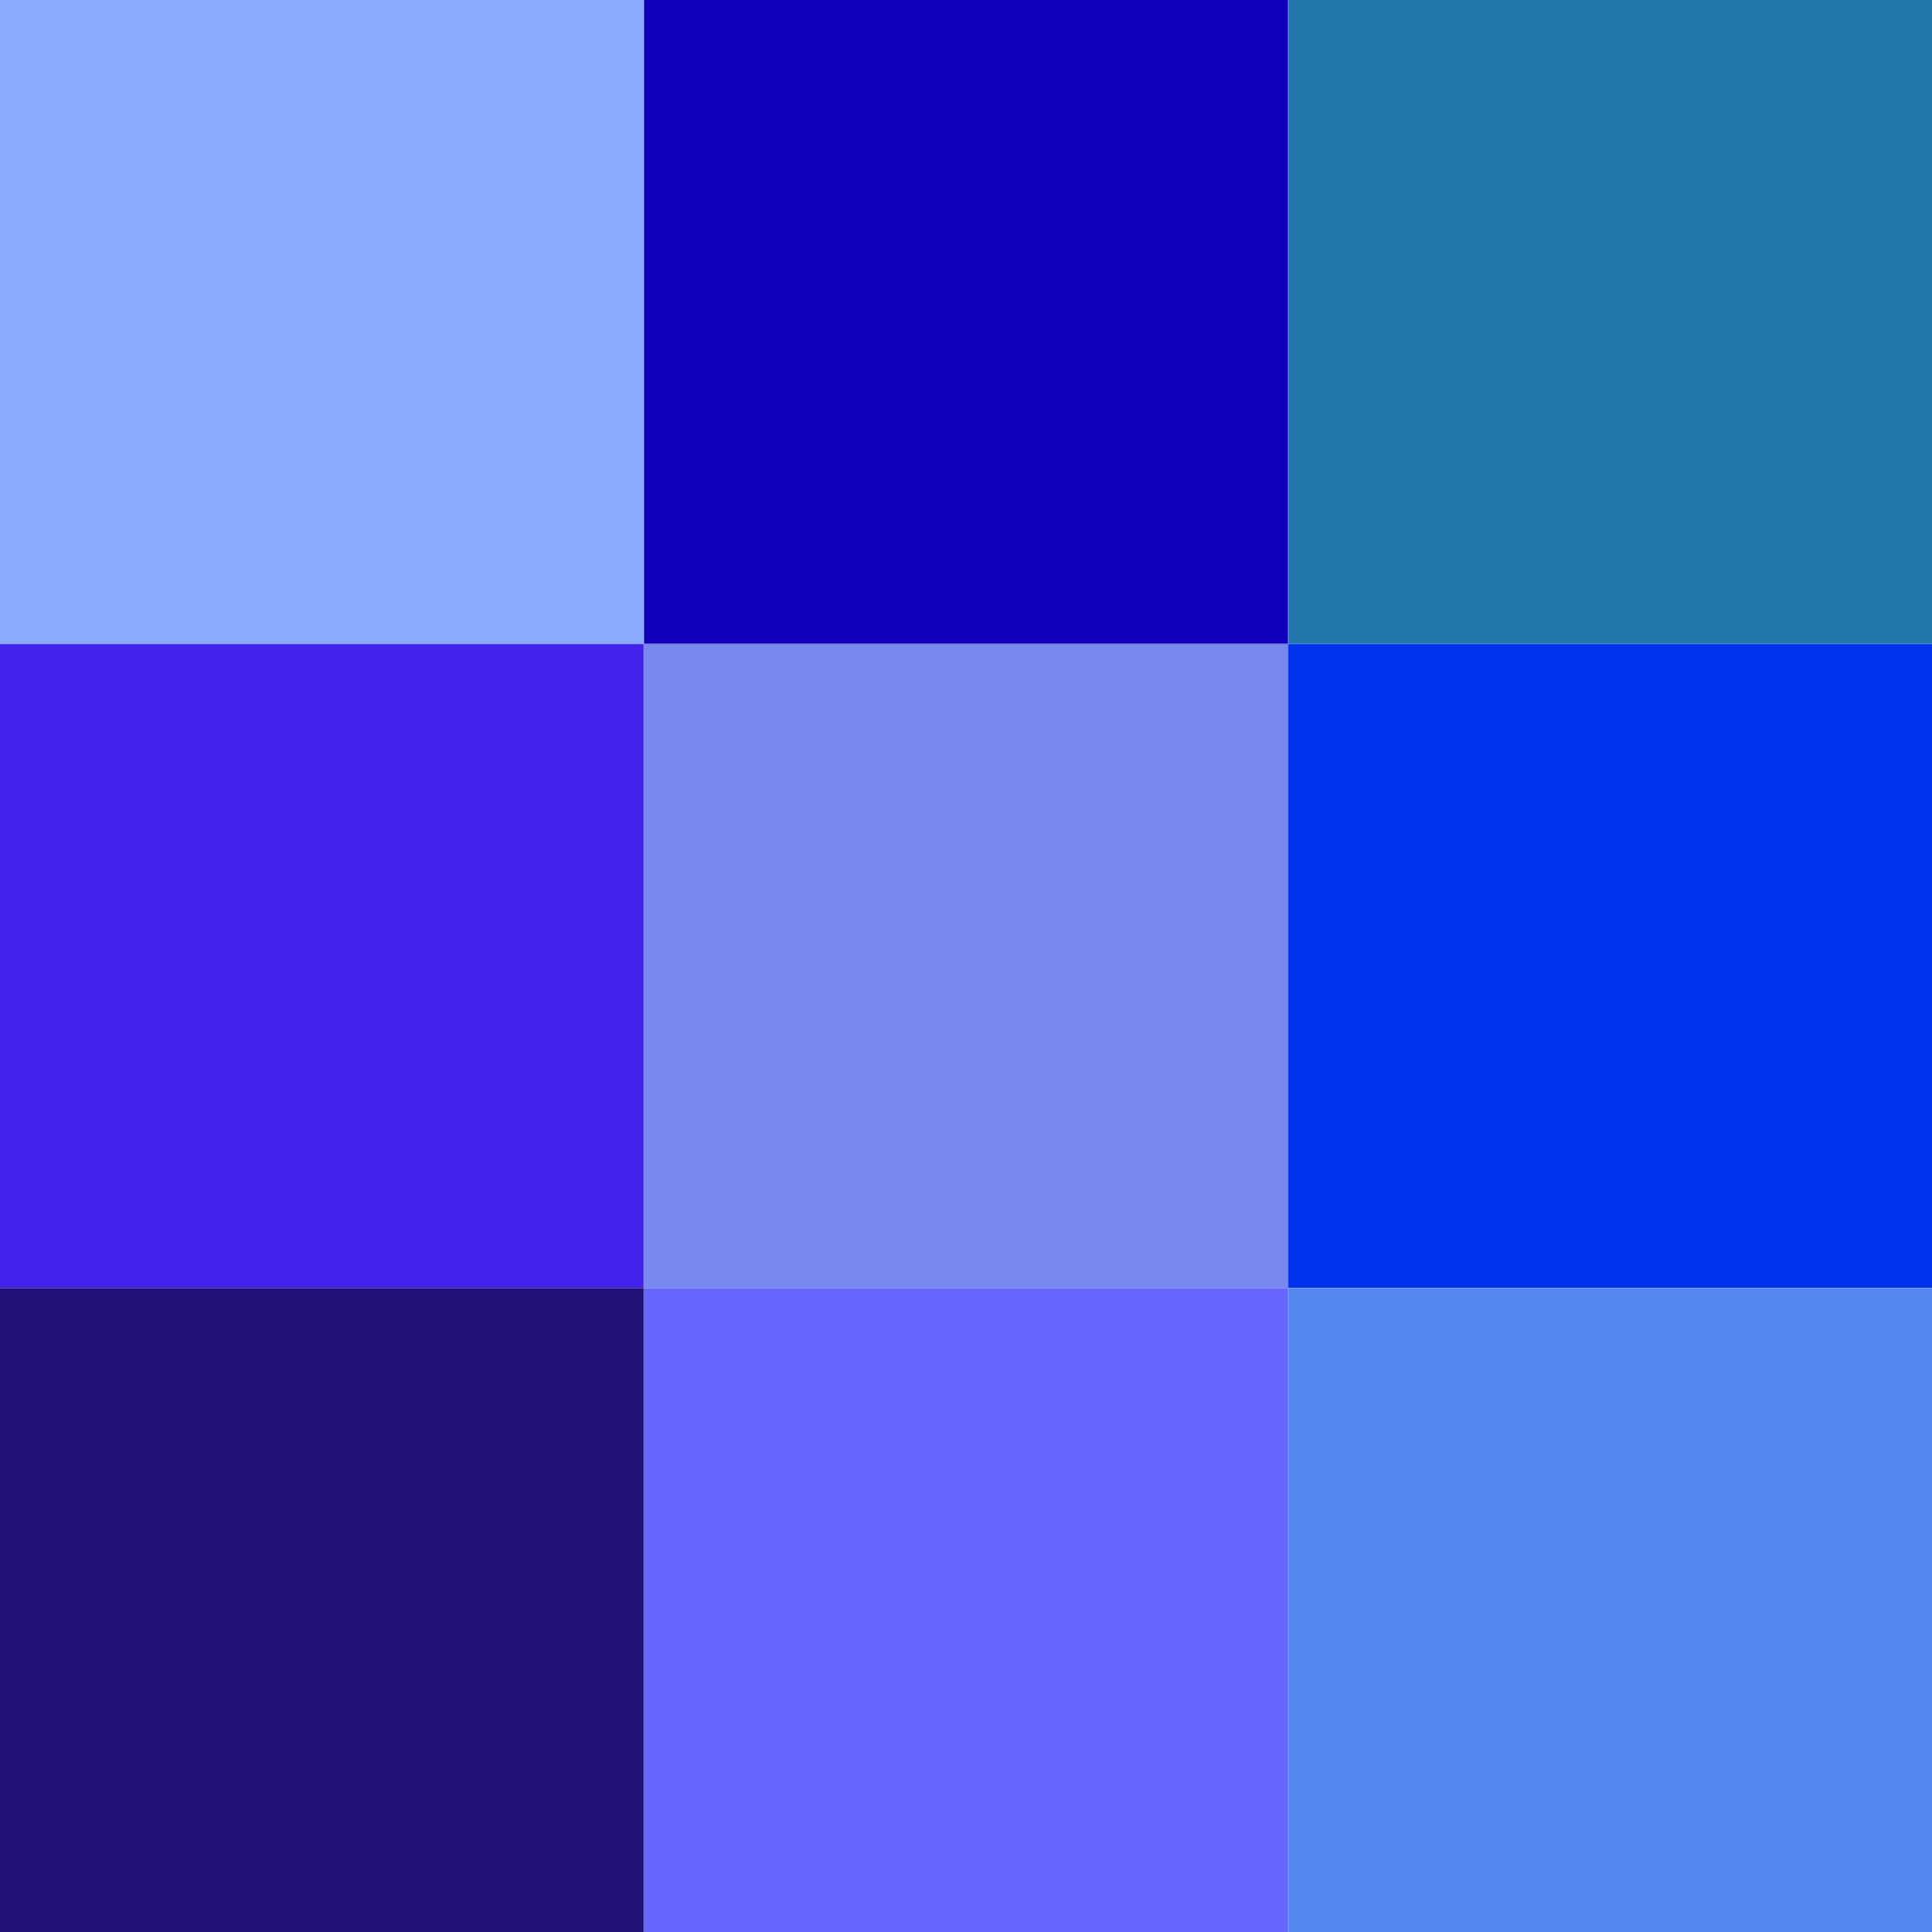 Colors Of Blue 5 essential colors for your summer wardrobe | dark blue suit